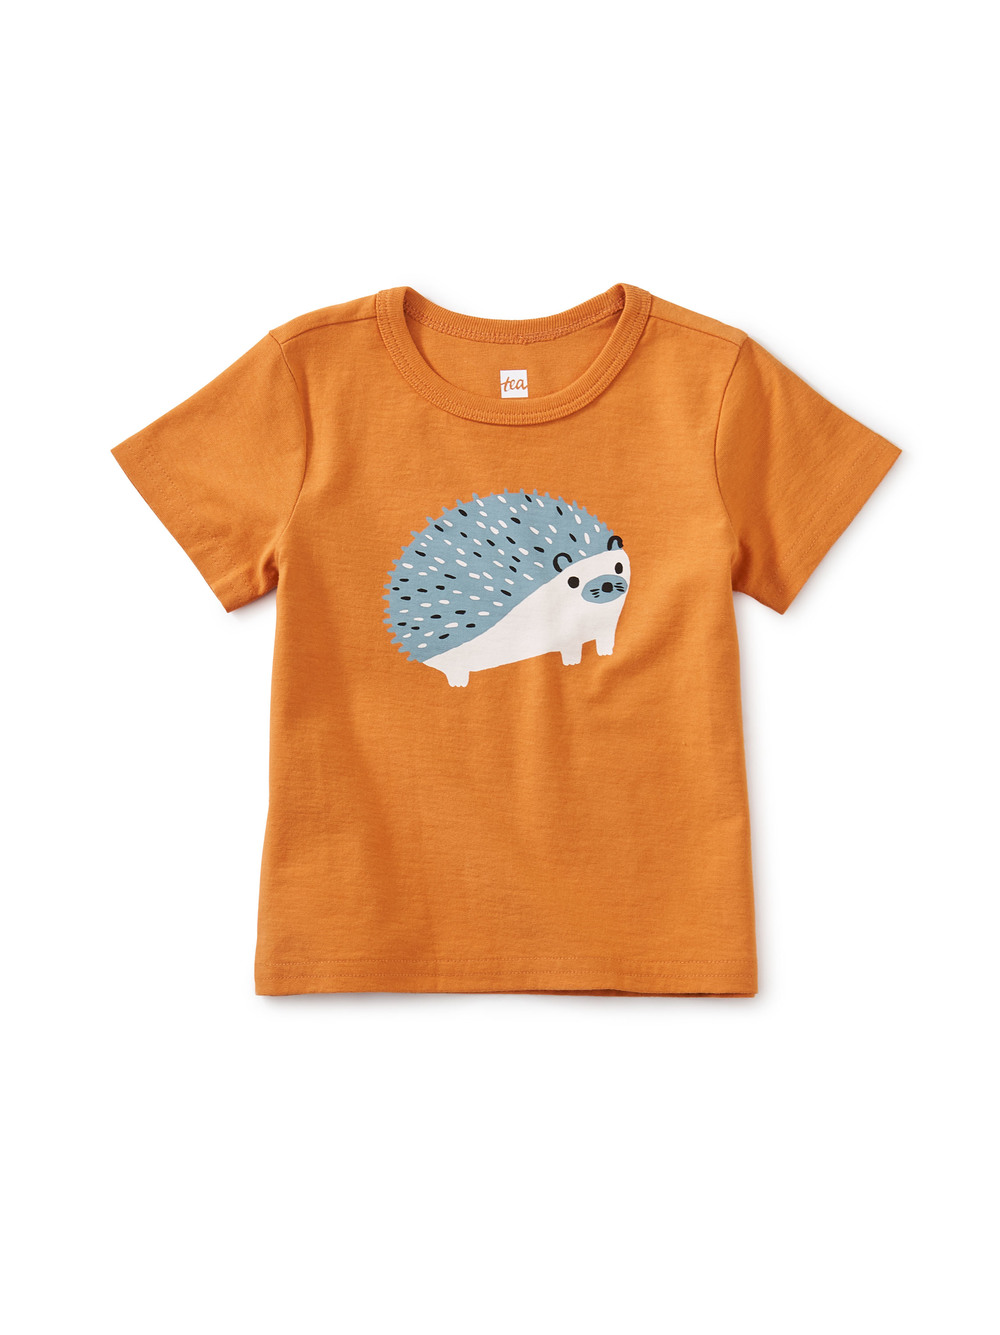 Woodland Hedgehog Graphic Tee